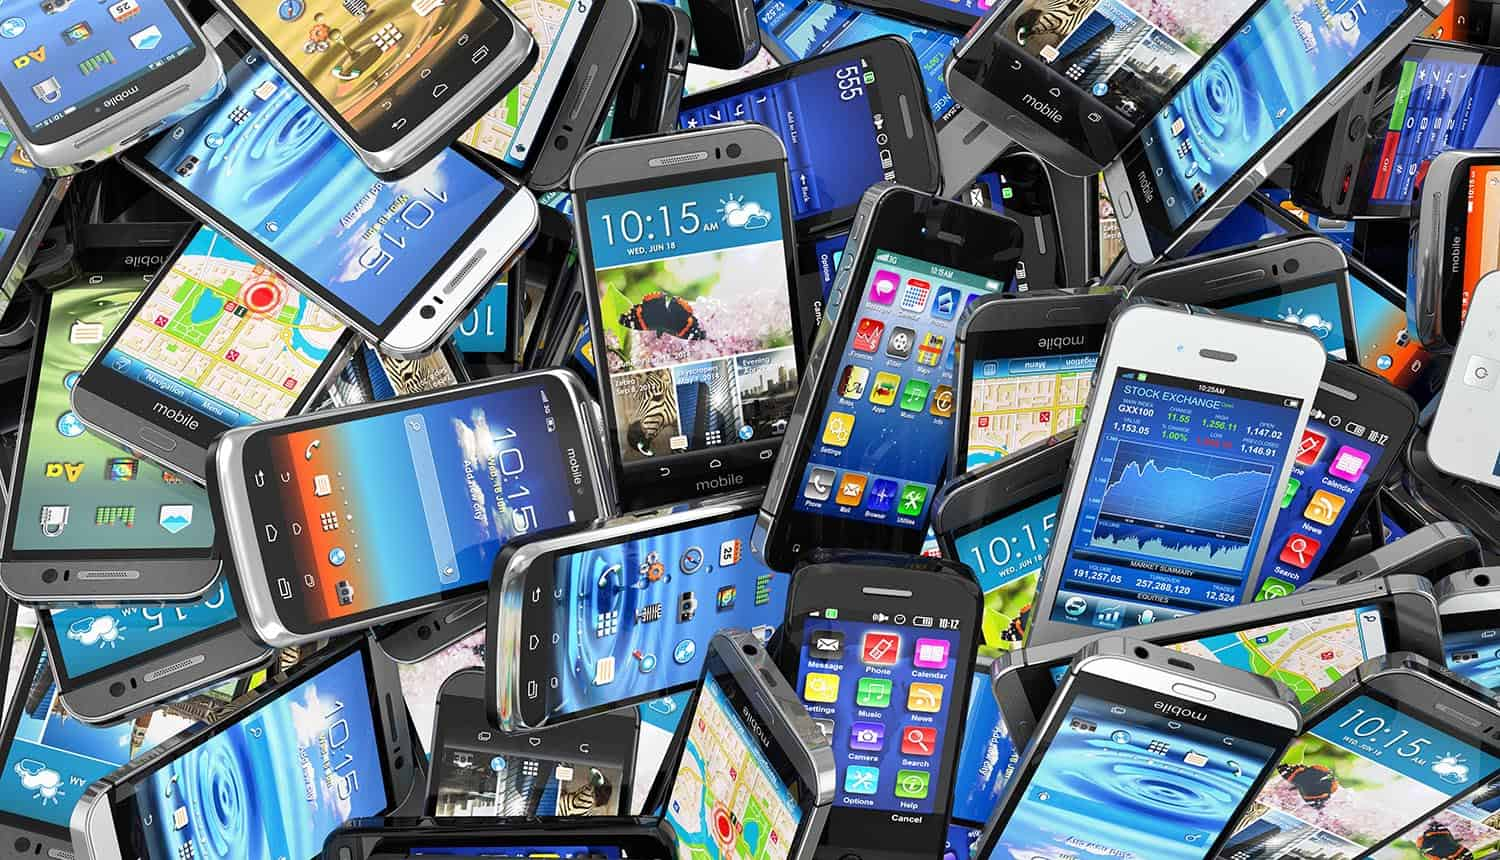 Pile of smartphones showing the pre-installed malware that comes with U.S. government-funded Android phones